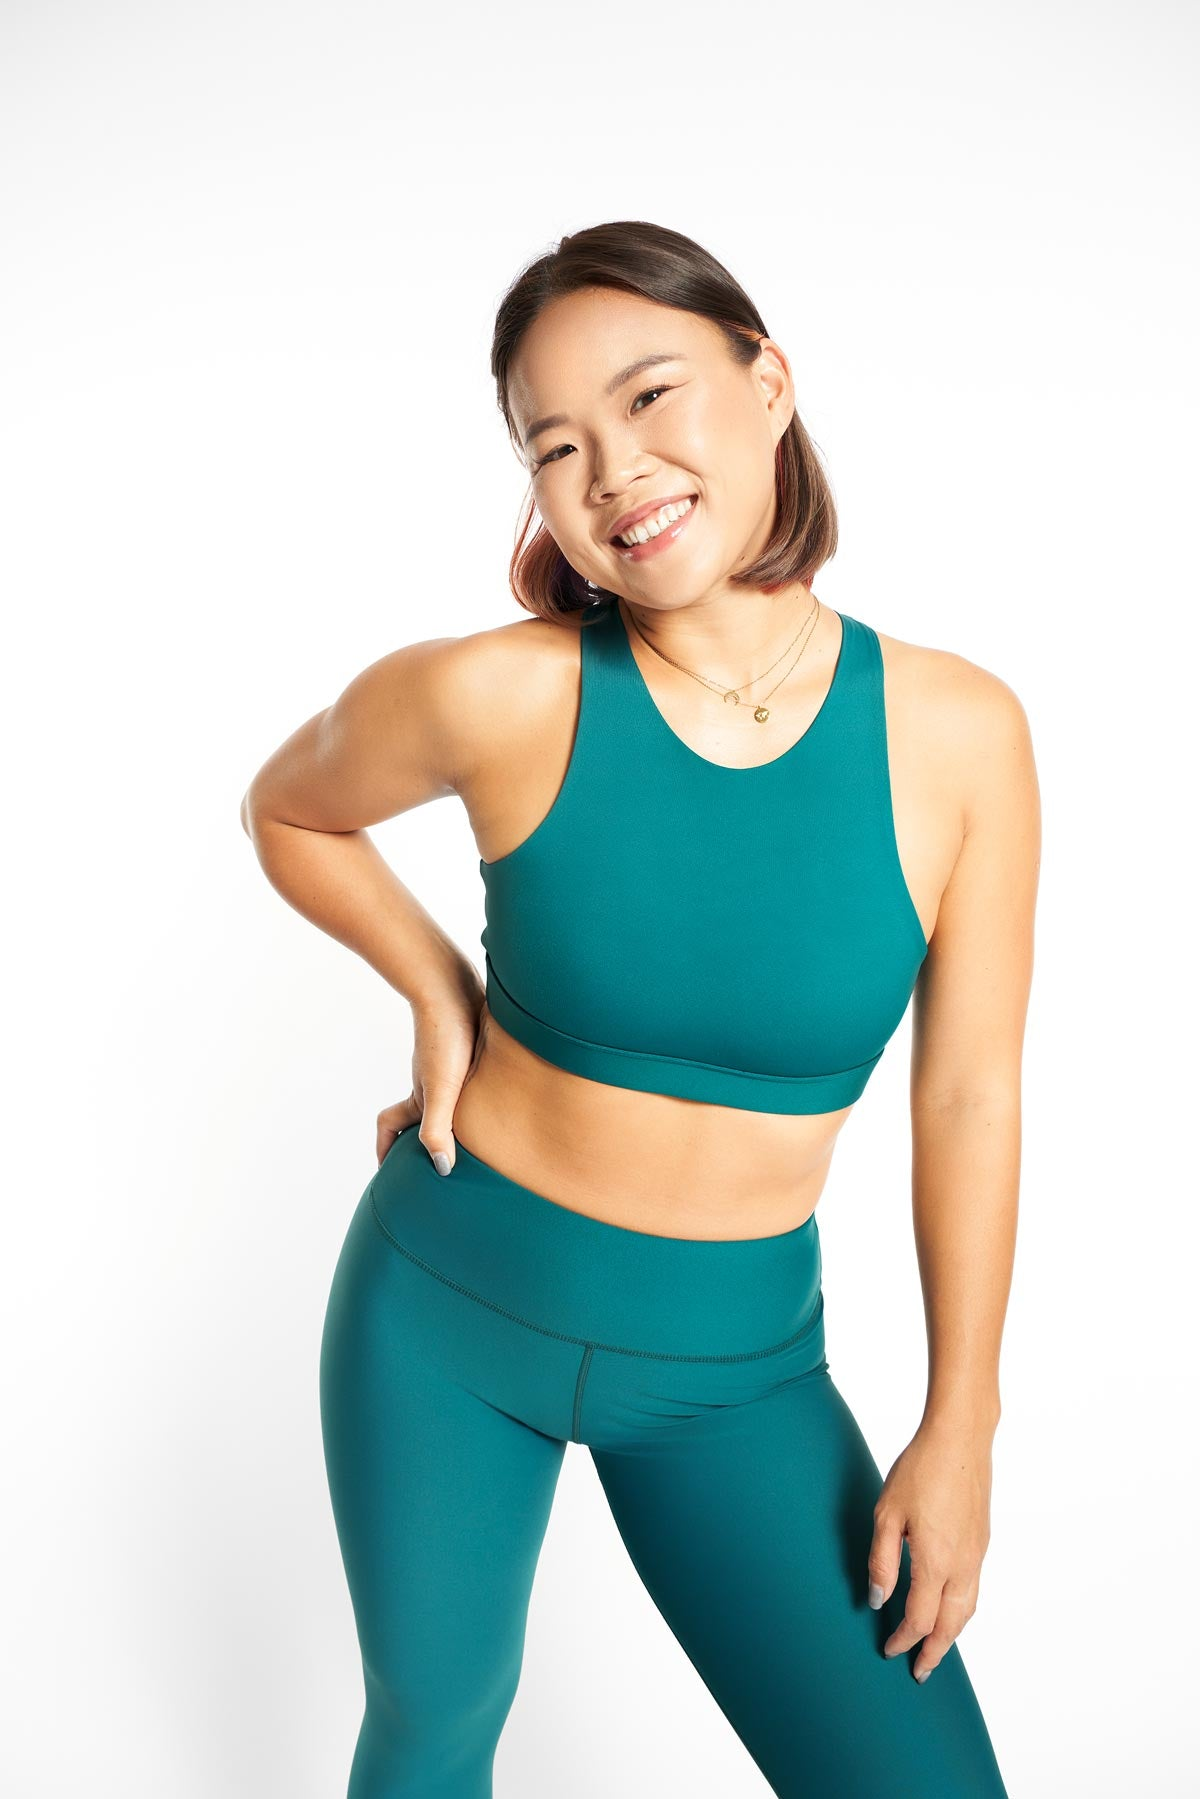 ro/an cacao teal bra front size m worn with matcha legging